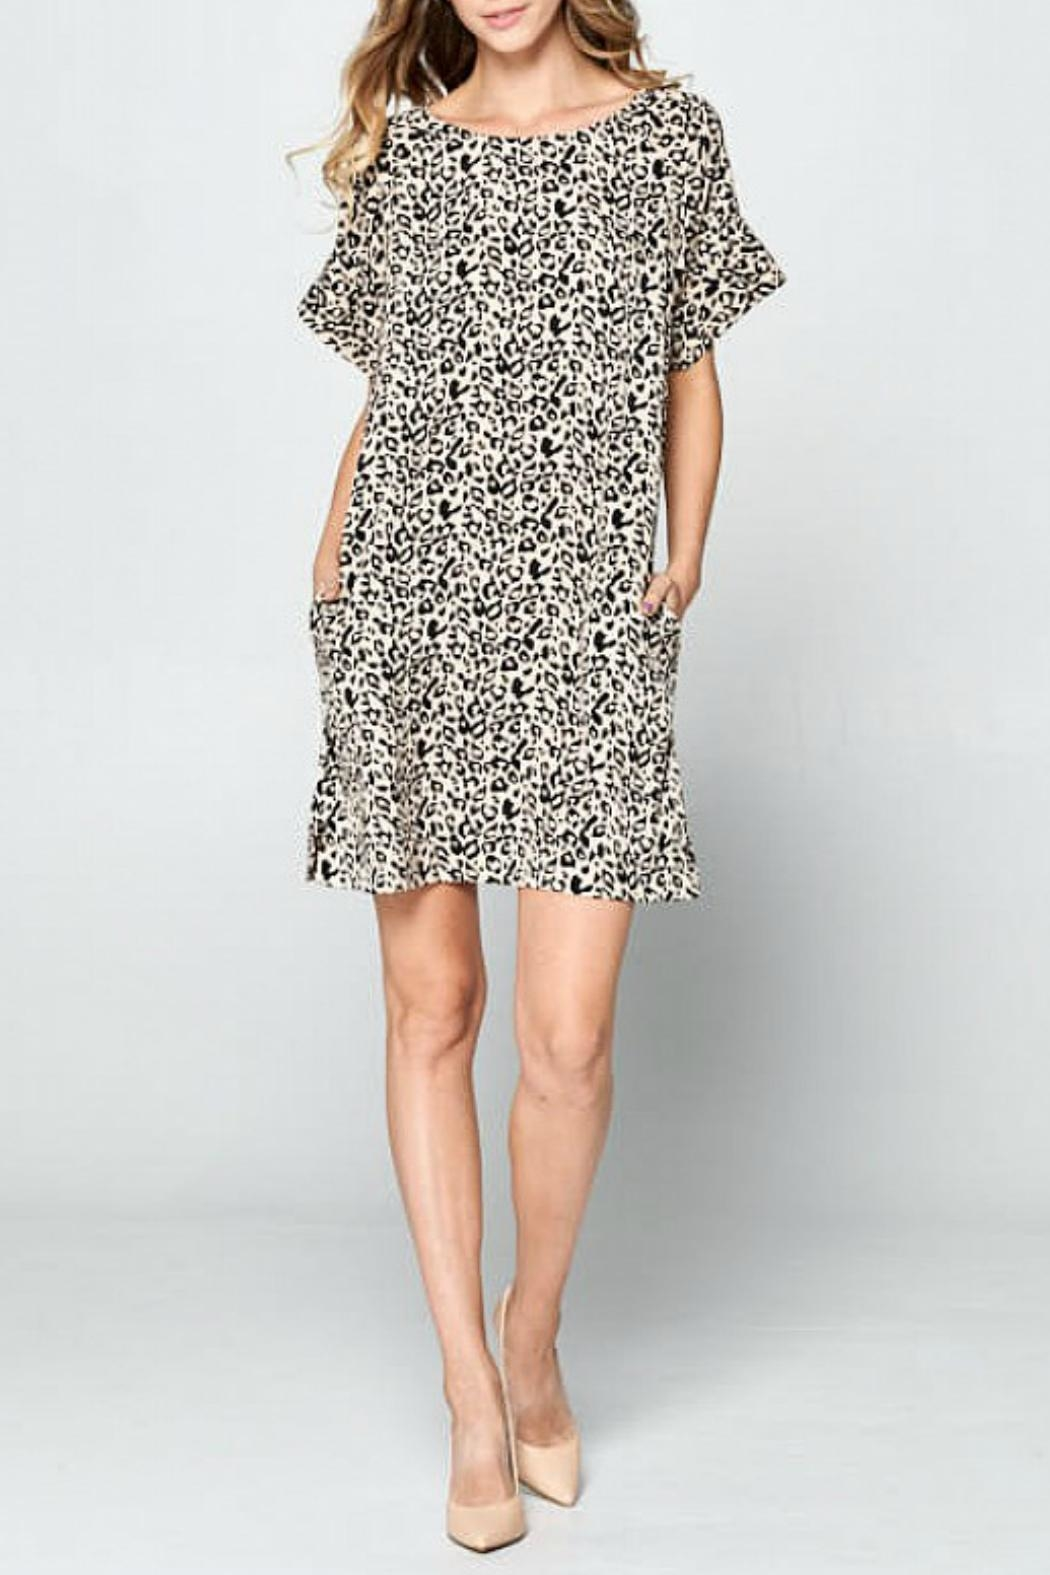 f5164cdb610 Ellison Leopard Print Dress from Texas by It s Swice — Shoptiques